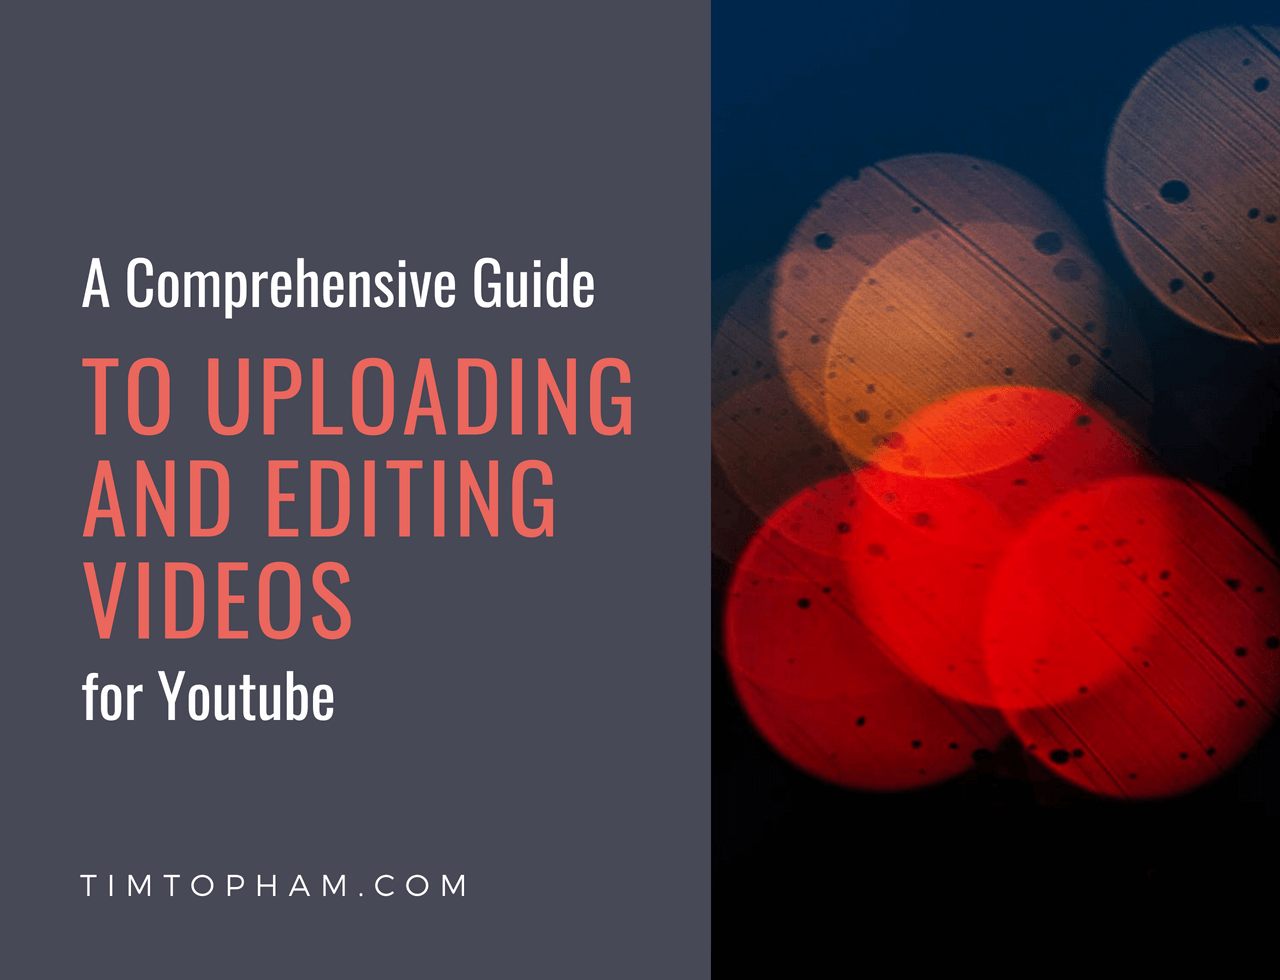 A-Comprehensive-Guide-to-Uploading-and-Editing-Videos-for-YouTube